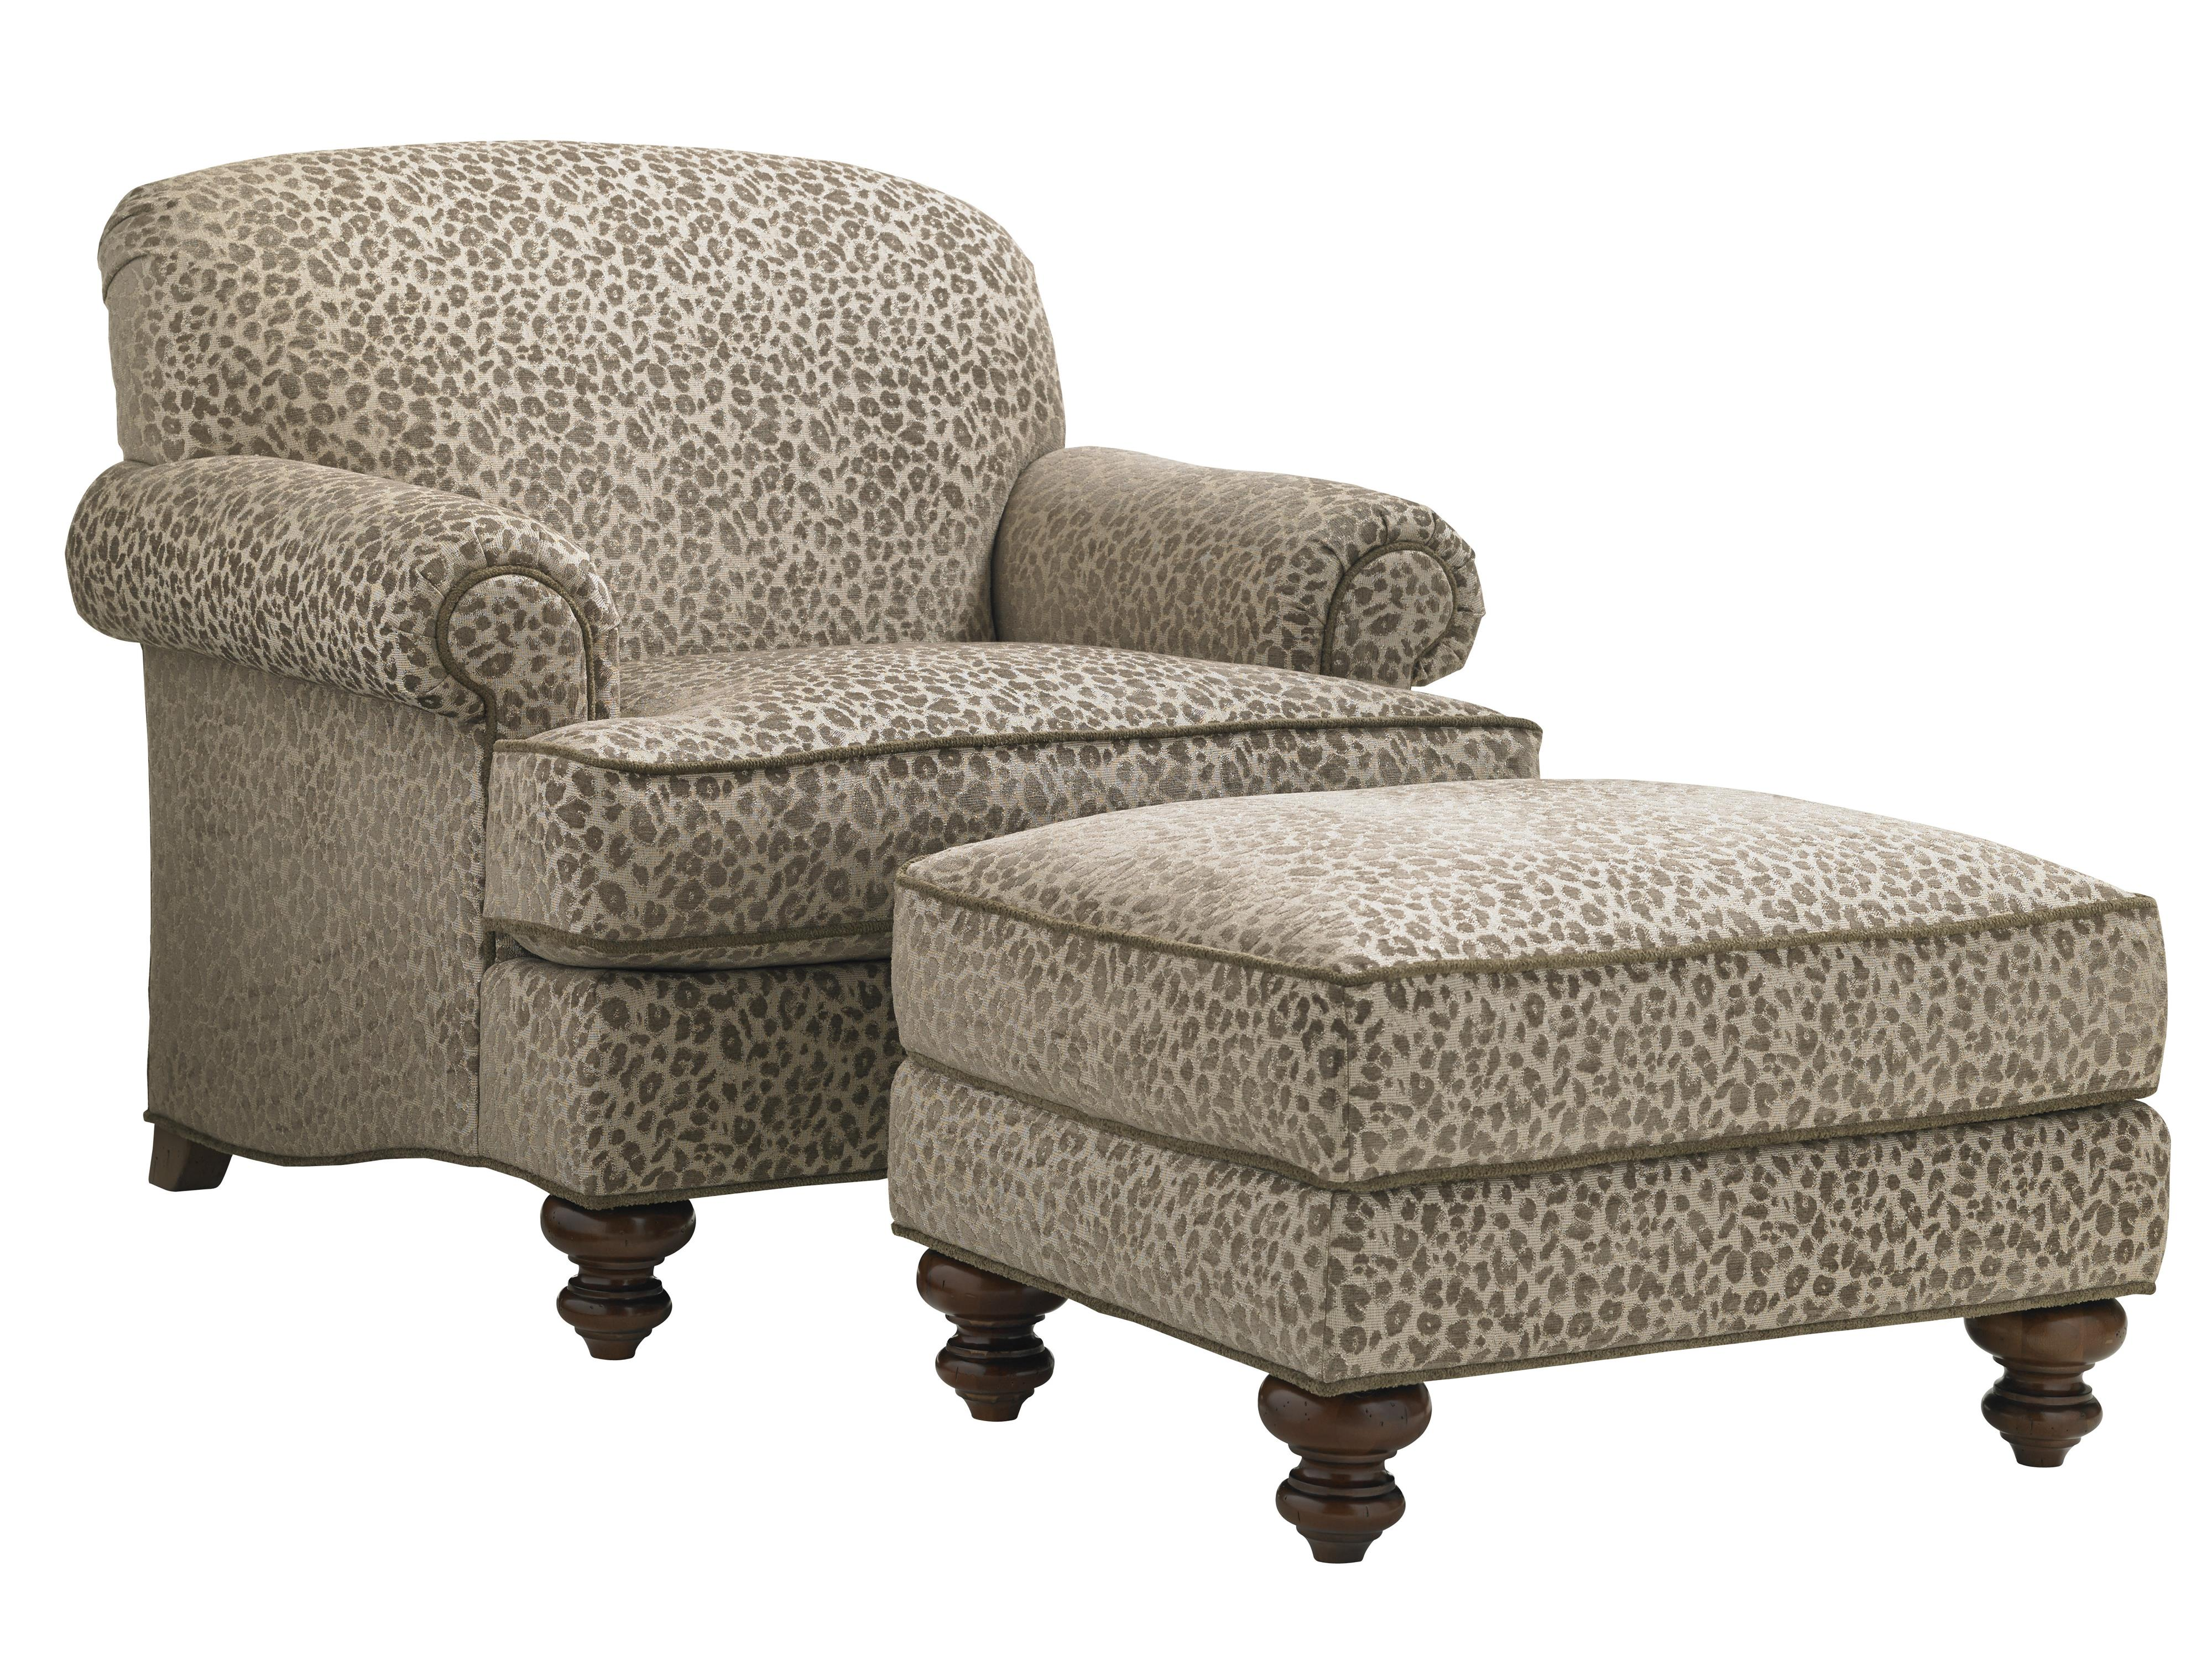 Coventry Hills Asbury Chair and Ottoman Set by Lexington at Johnny Janosik